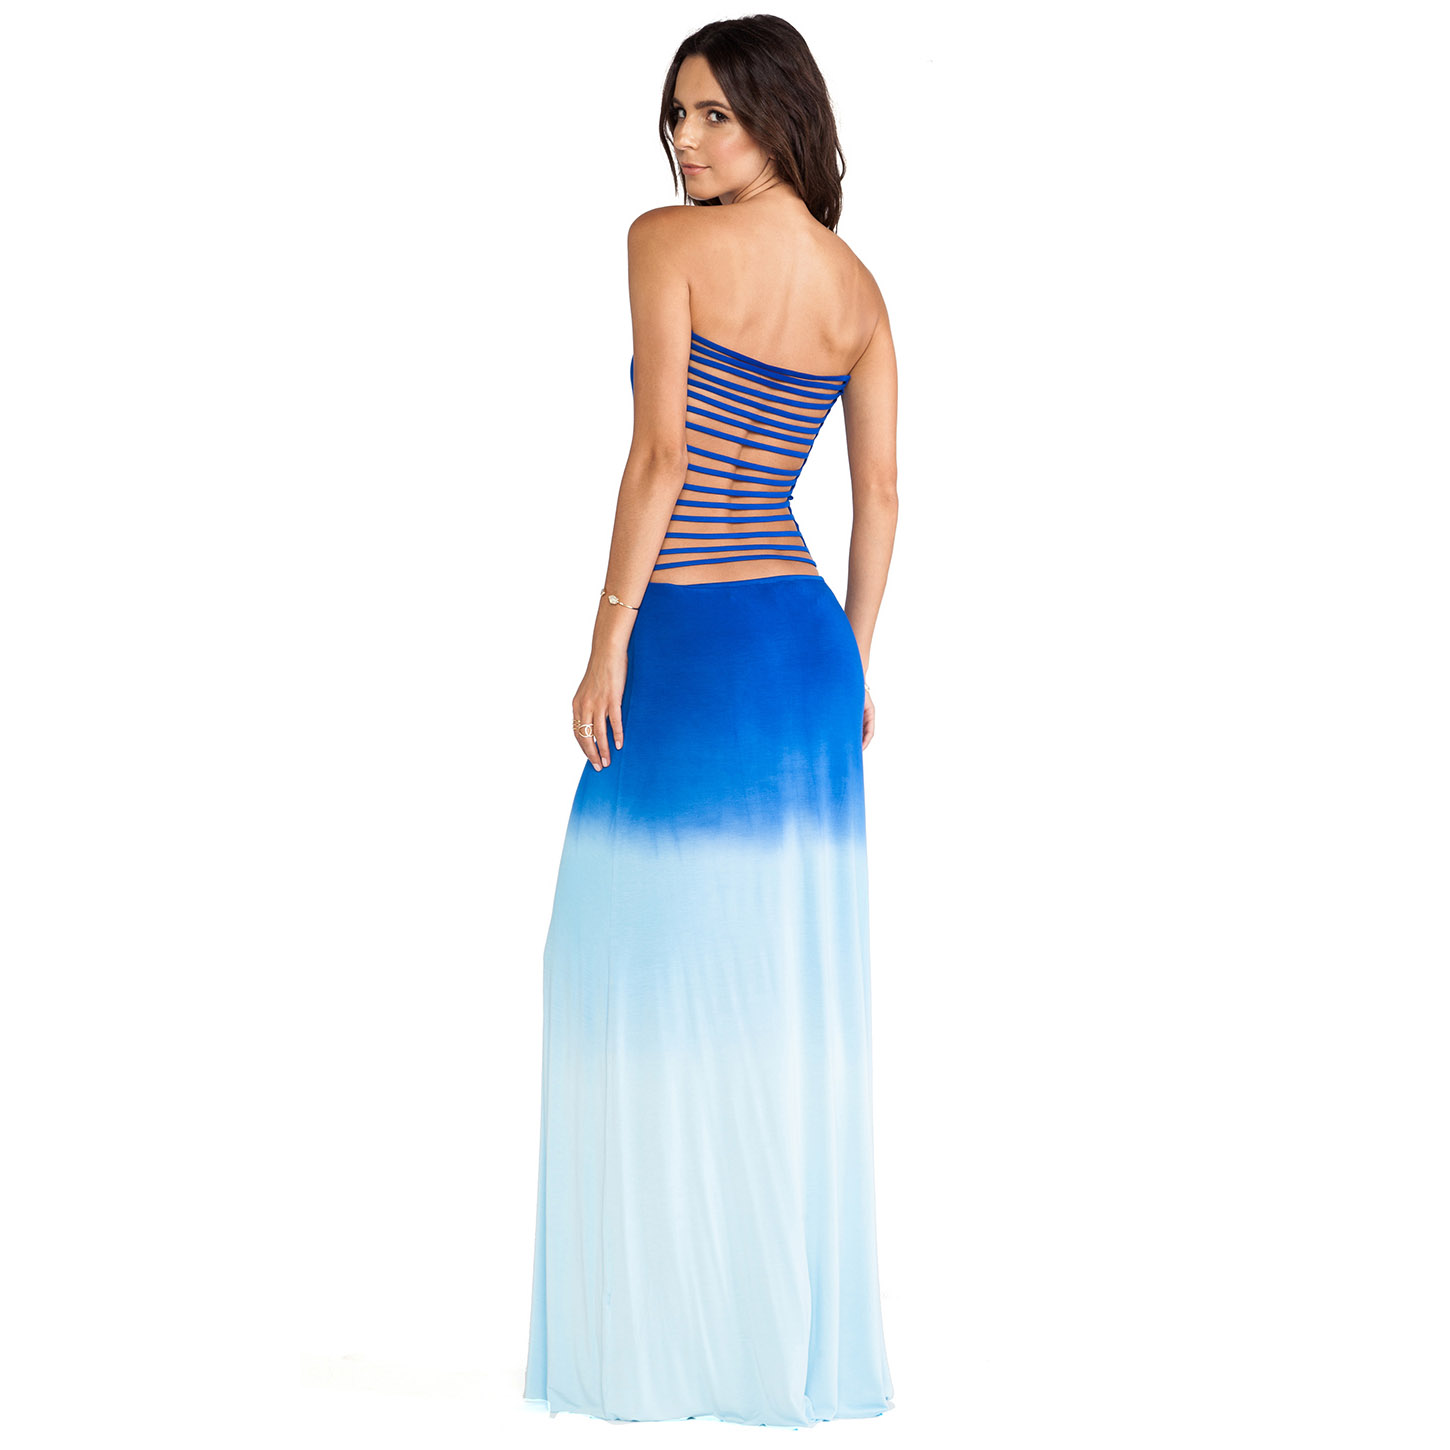 Aliexpress.com : Buy Free Shipping Posterization bandage back cutout gradient color dip dyeing tube top full dress tube top one piece dress  from Reliable dresses sportswear suppliers on ED FASHION.